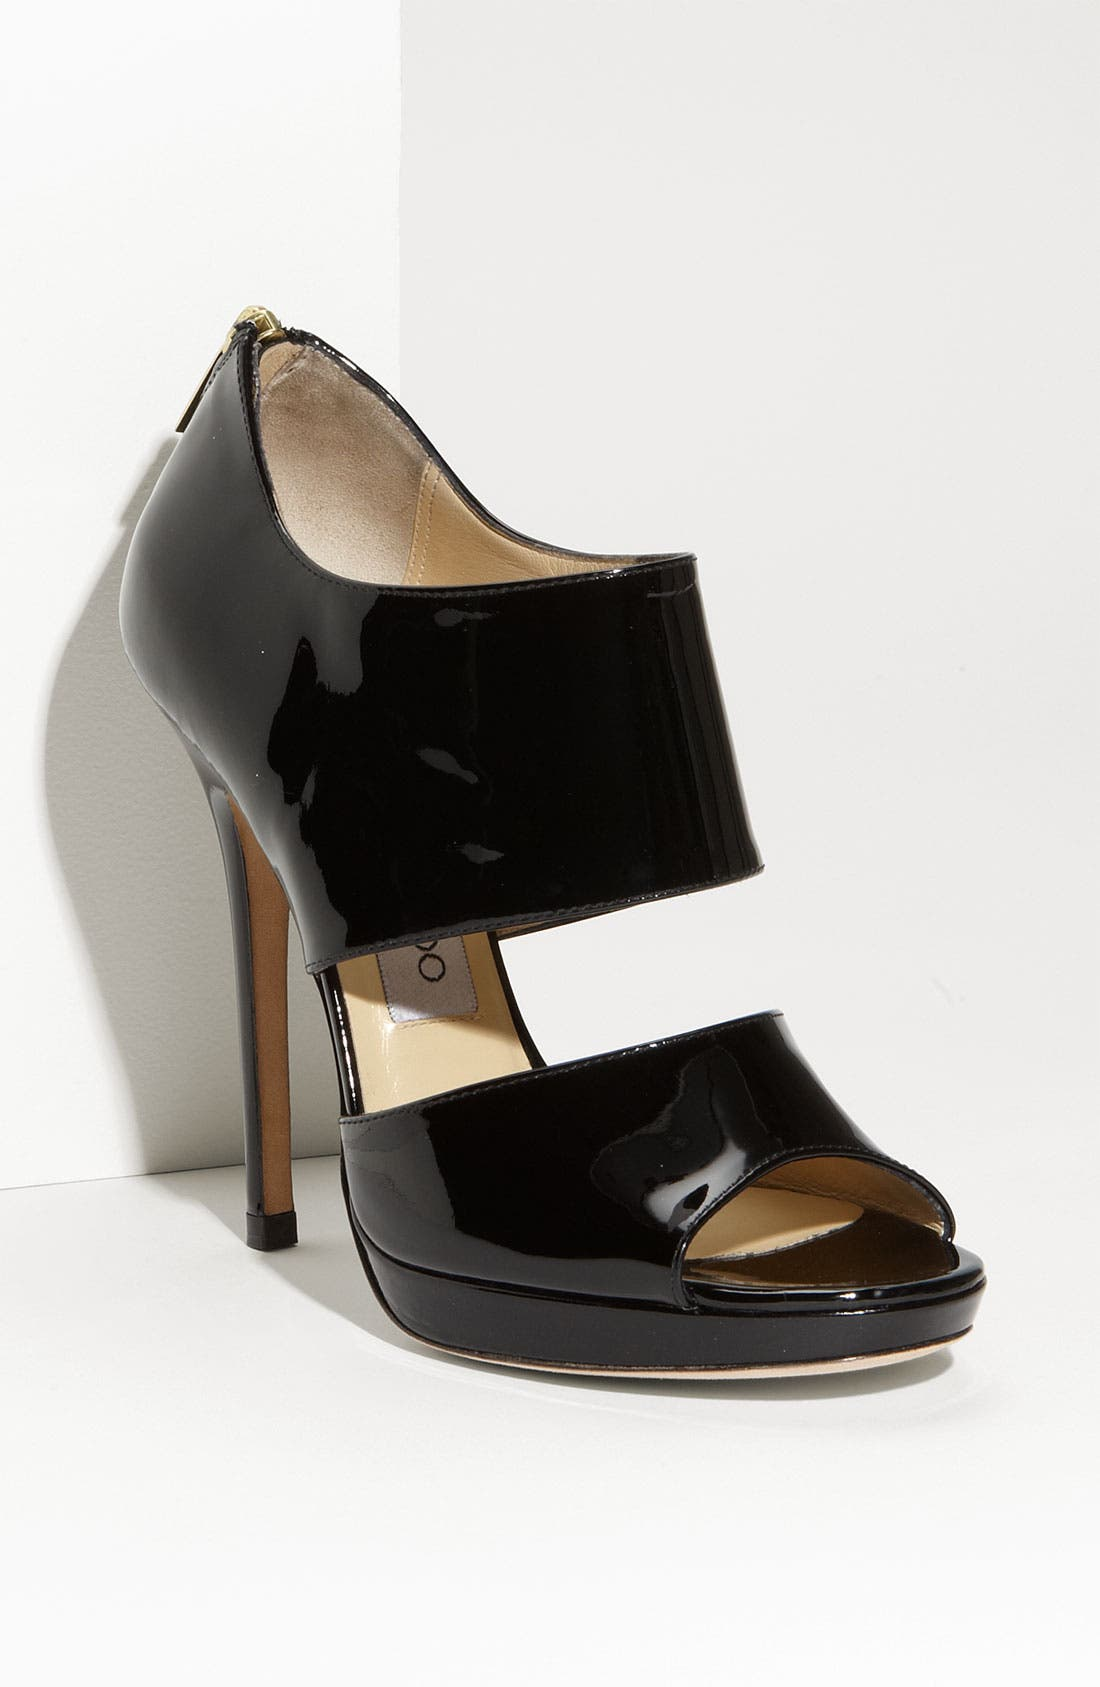 Alternate Image 1 Selected - Jimmy Choo 'Private' Cuff Patent Leather Sandal